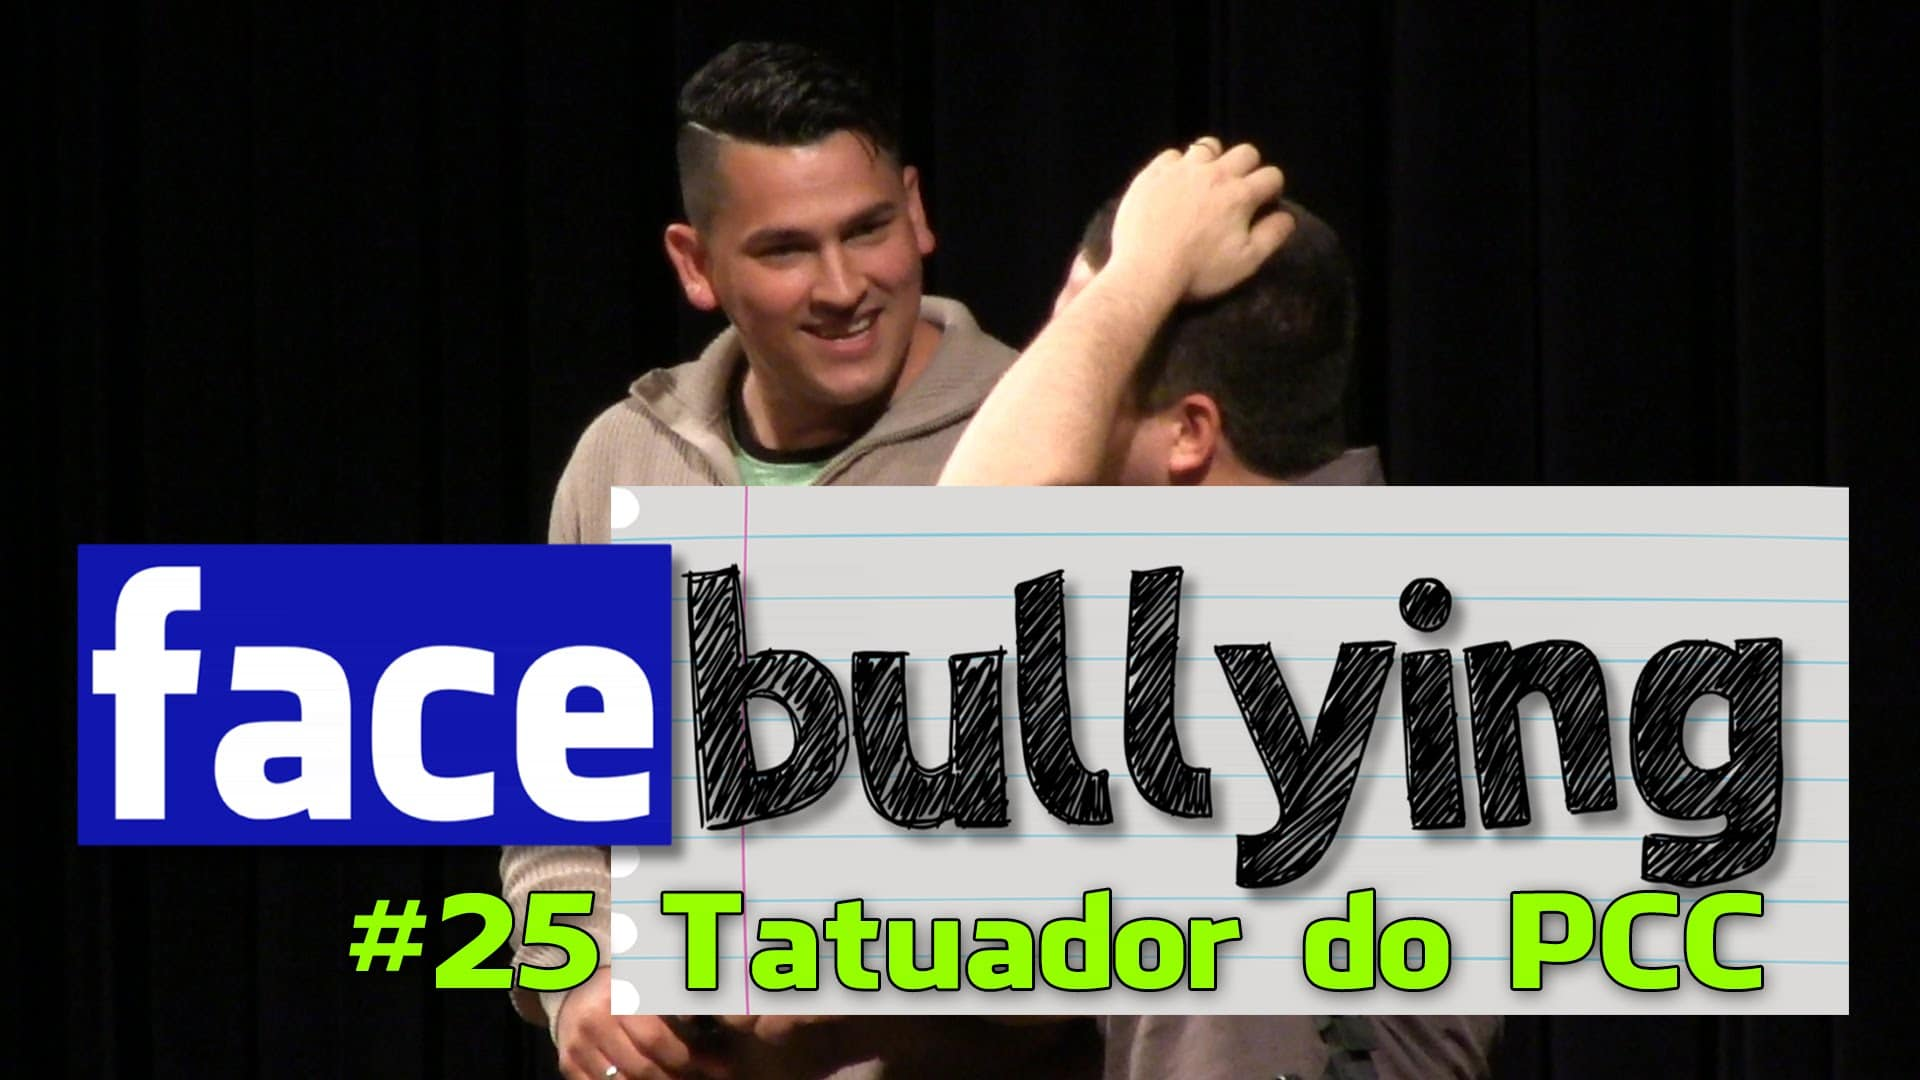 Facebullying – Tatuador do PCC - facebullying tatuador do pcc